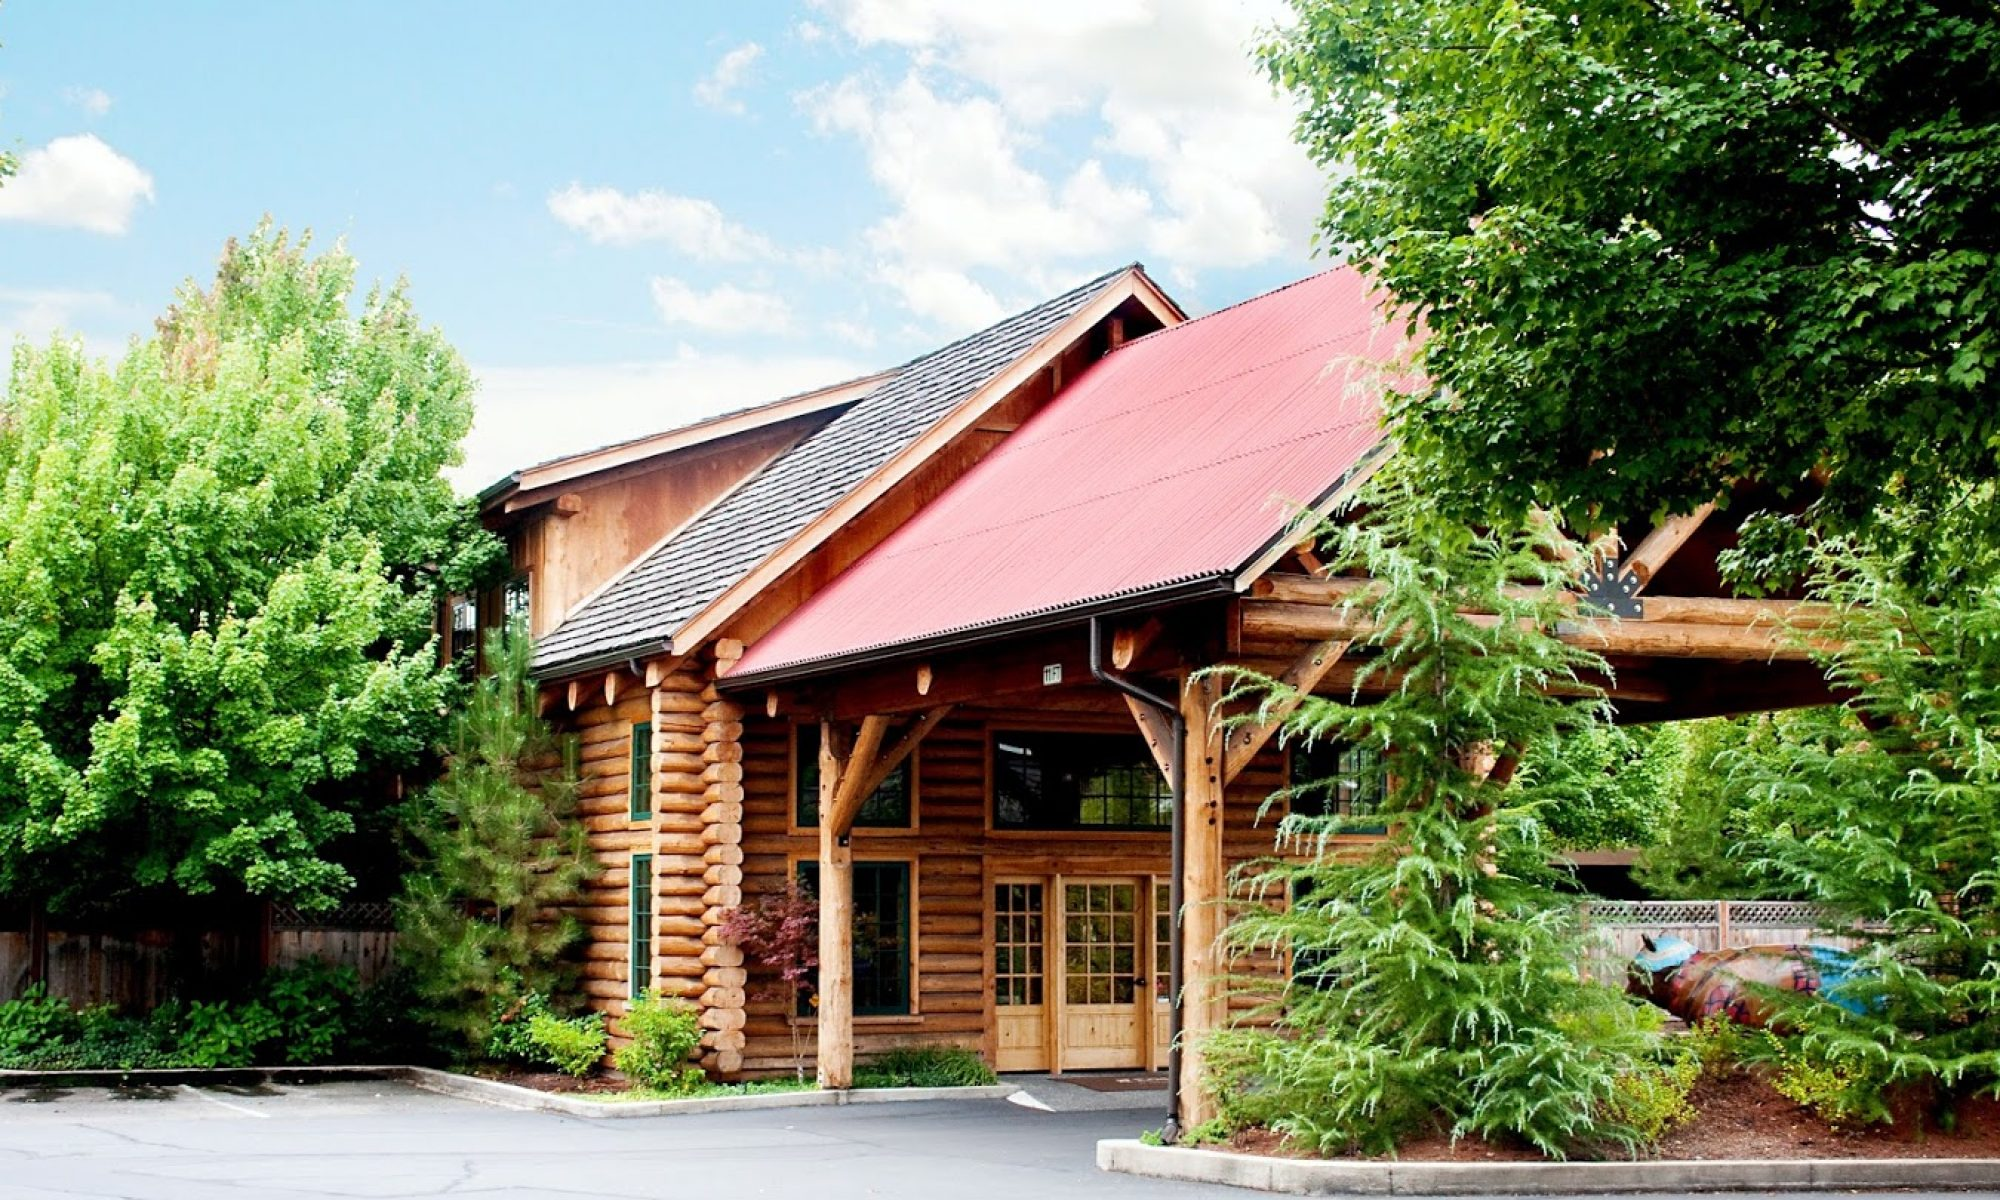 The Event Center at the Lodge at Riverside